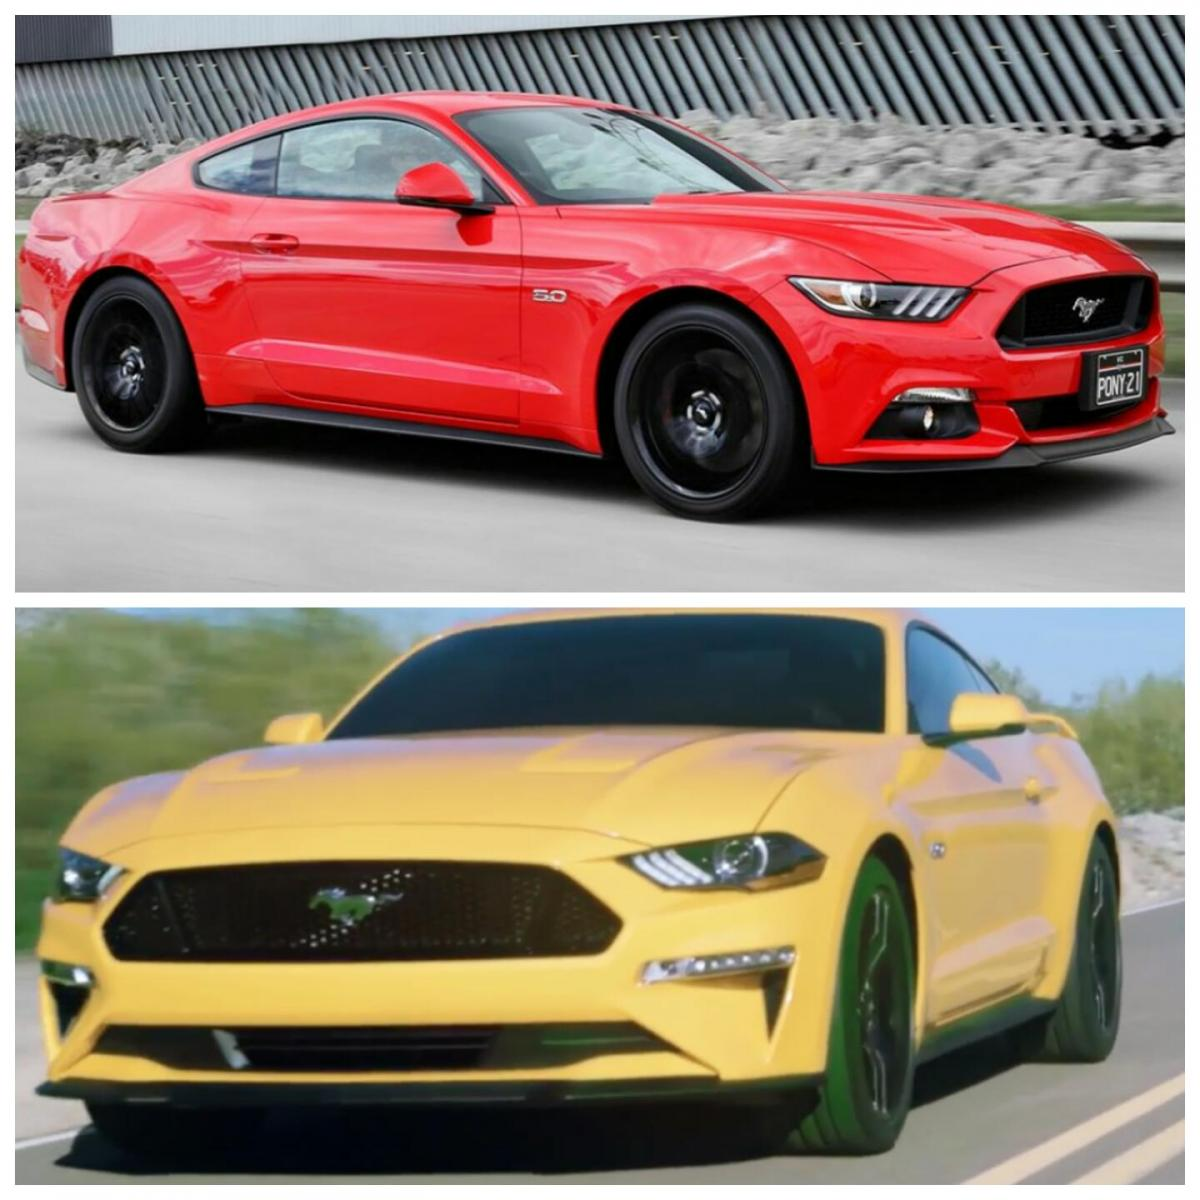 2018 Shelby GT350 Mustang Rendered With Facelift That Won't Happen - autoevolution